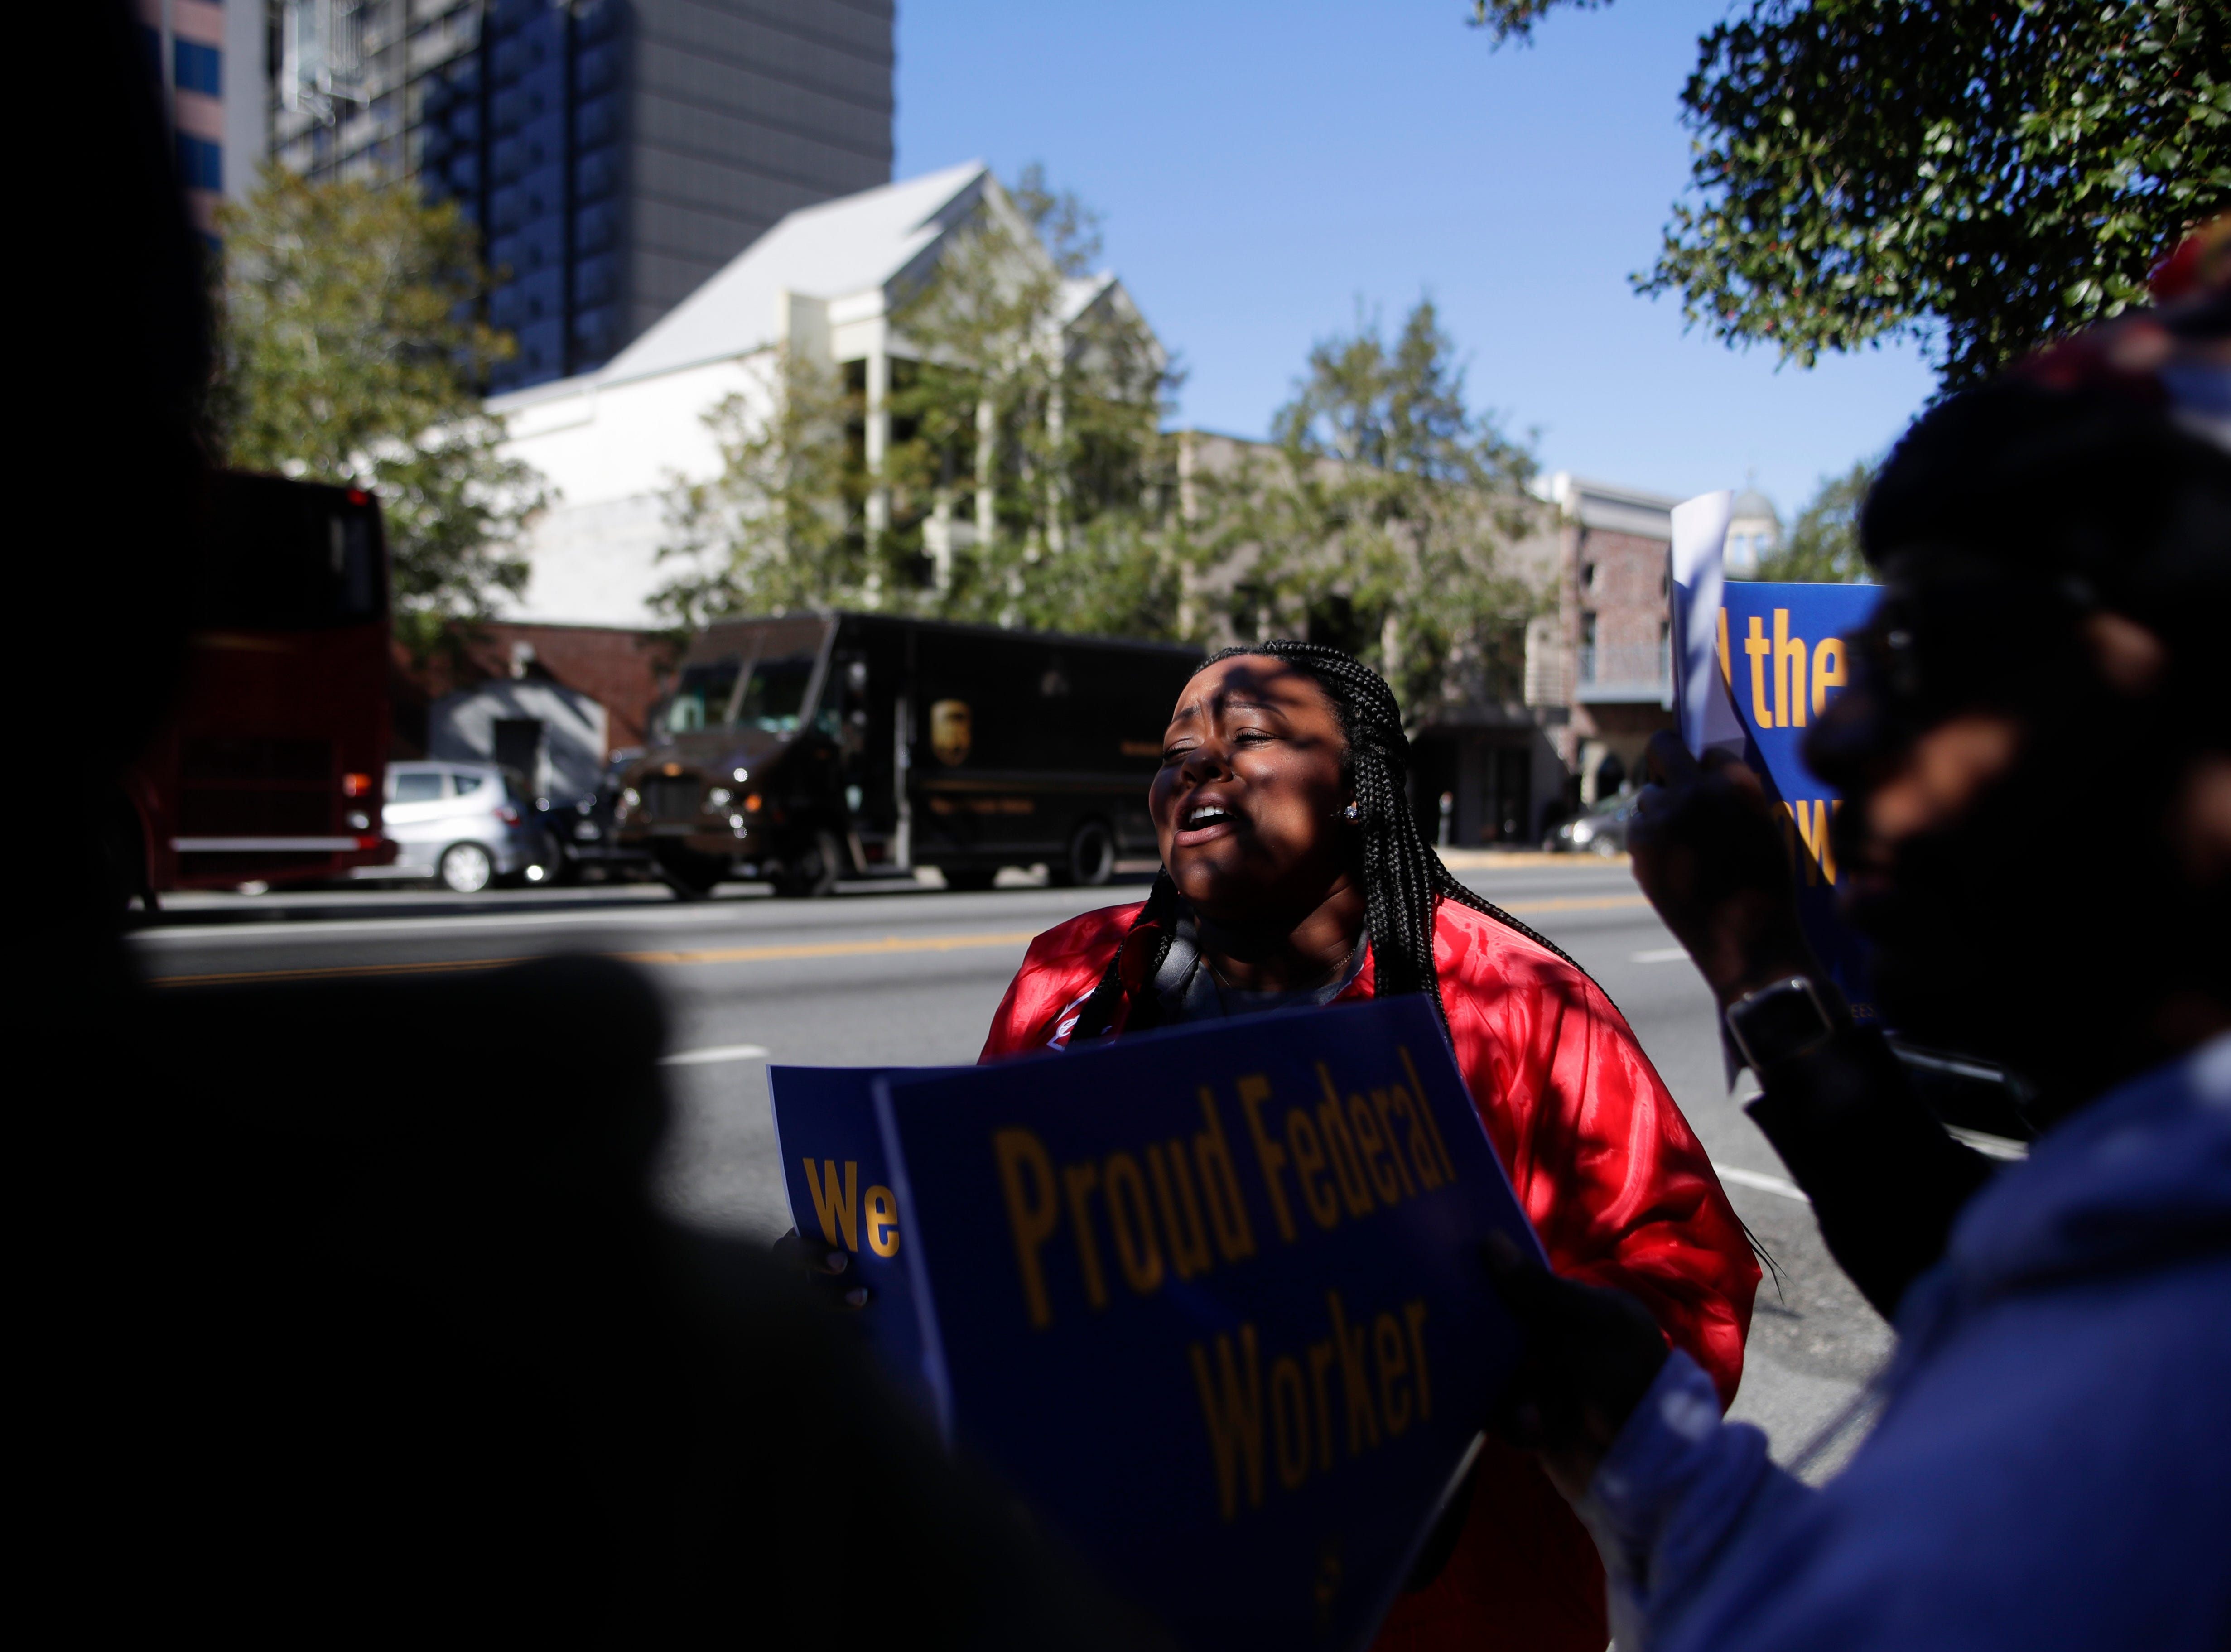 Kristan Morgan, a Federal Correctional Institution worker, leads chants among her colleagues and other federal workers who gathered to protest the government shutdown in downtown Tallahassee Thursday, Jan. 10, 2019.